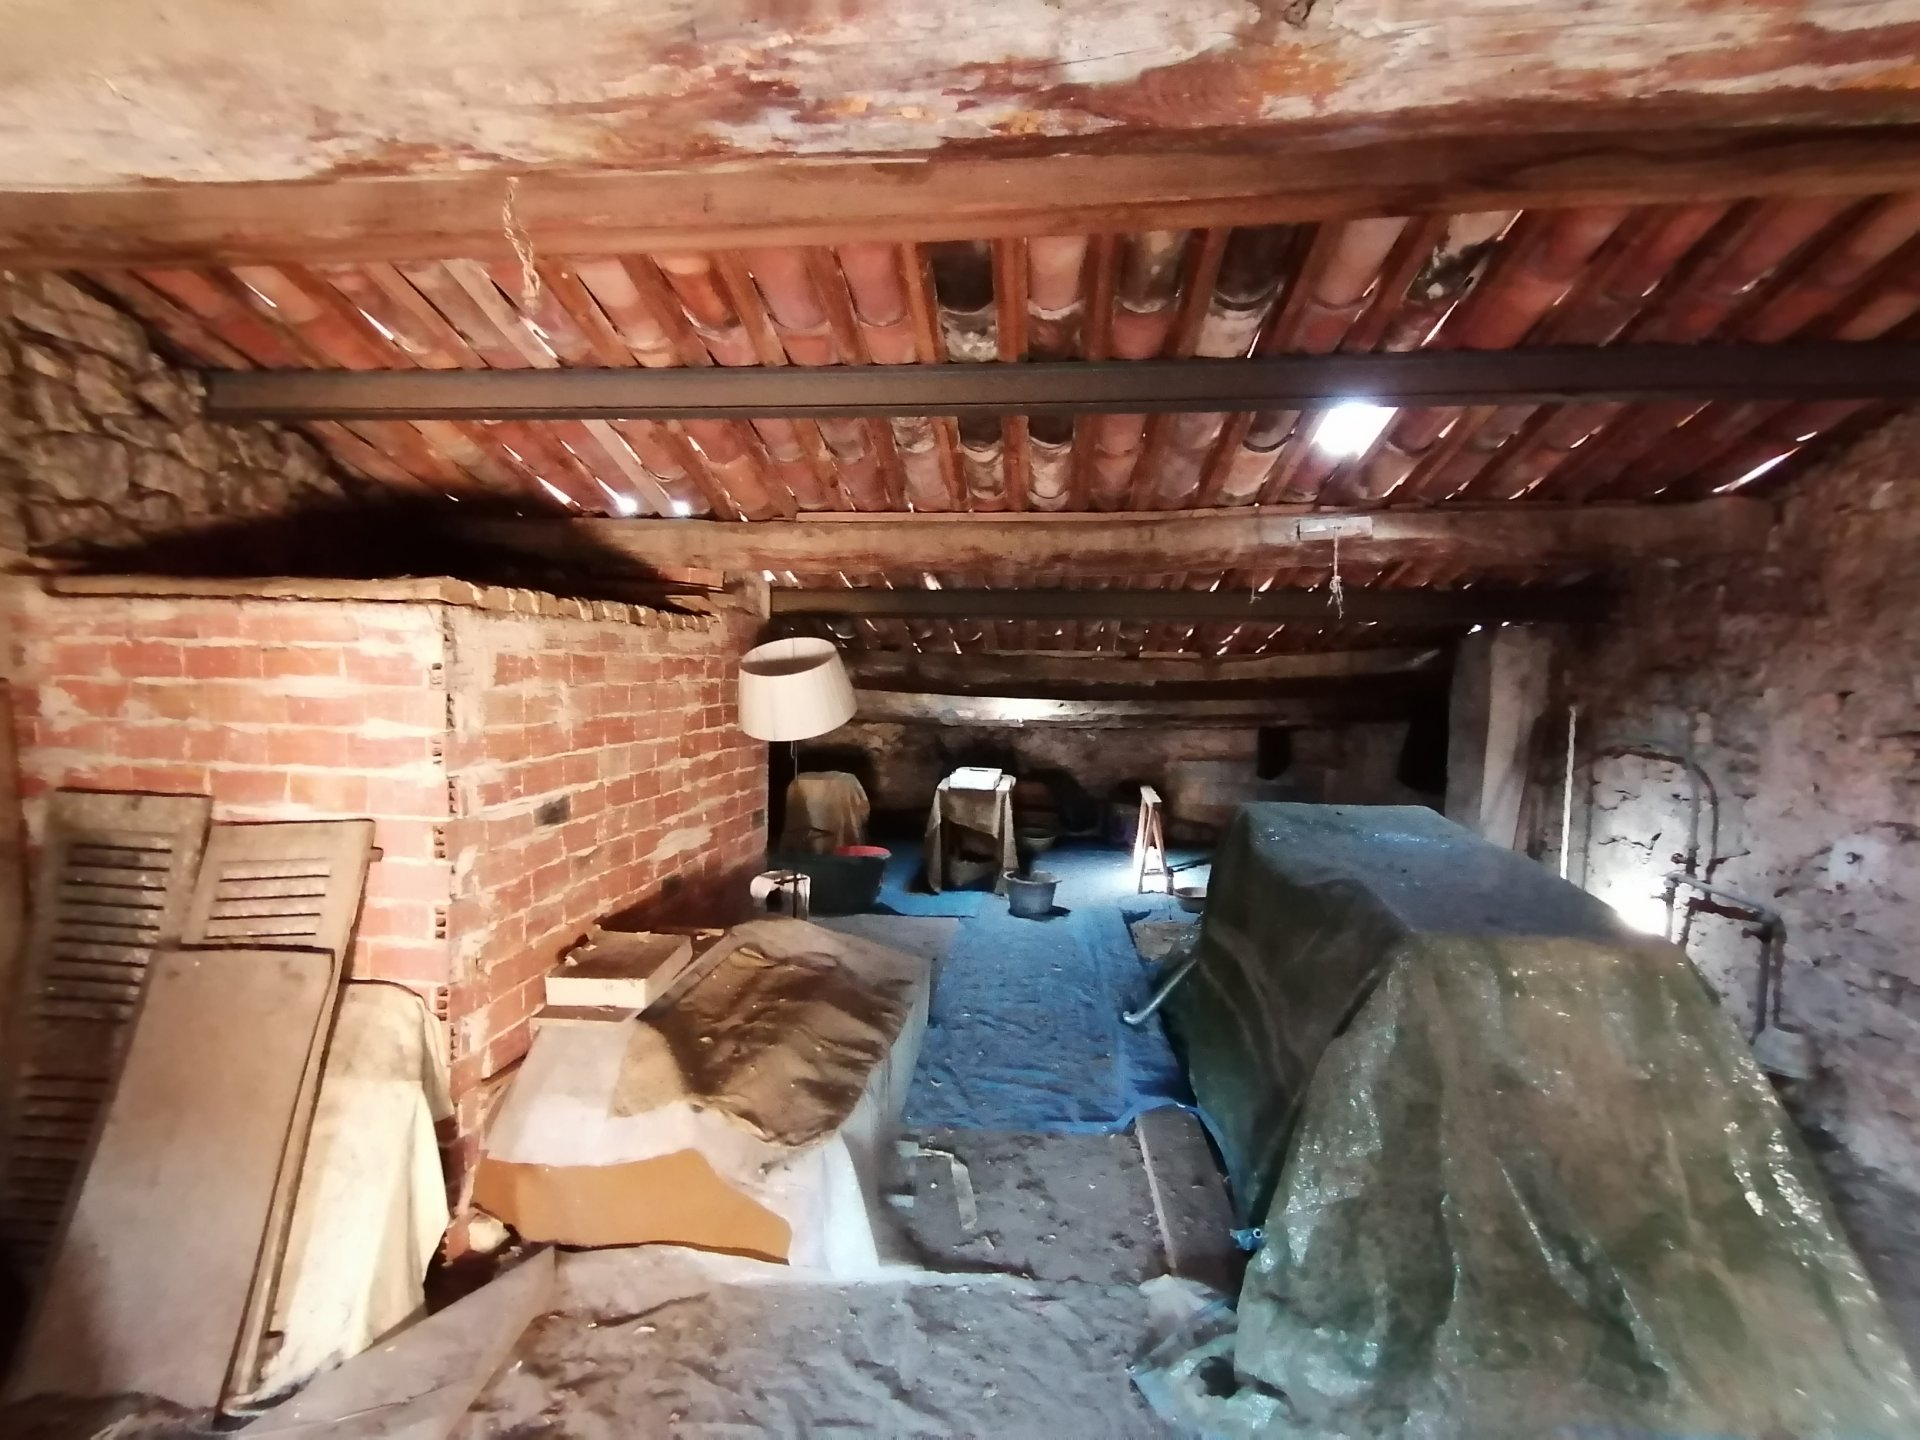 3 Bedroomed Village house - 128m² - garden and cave